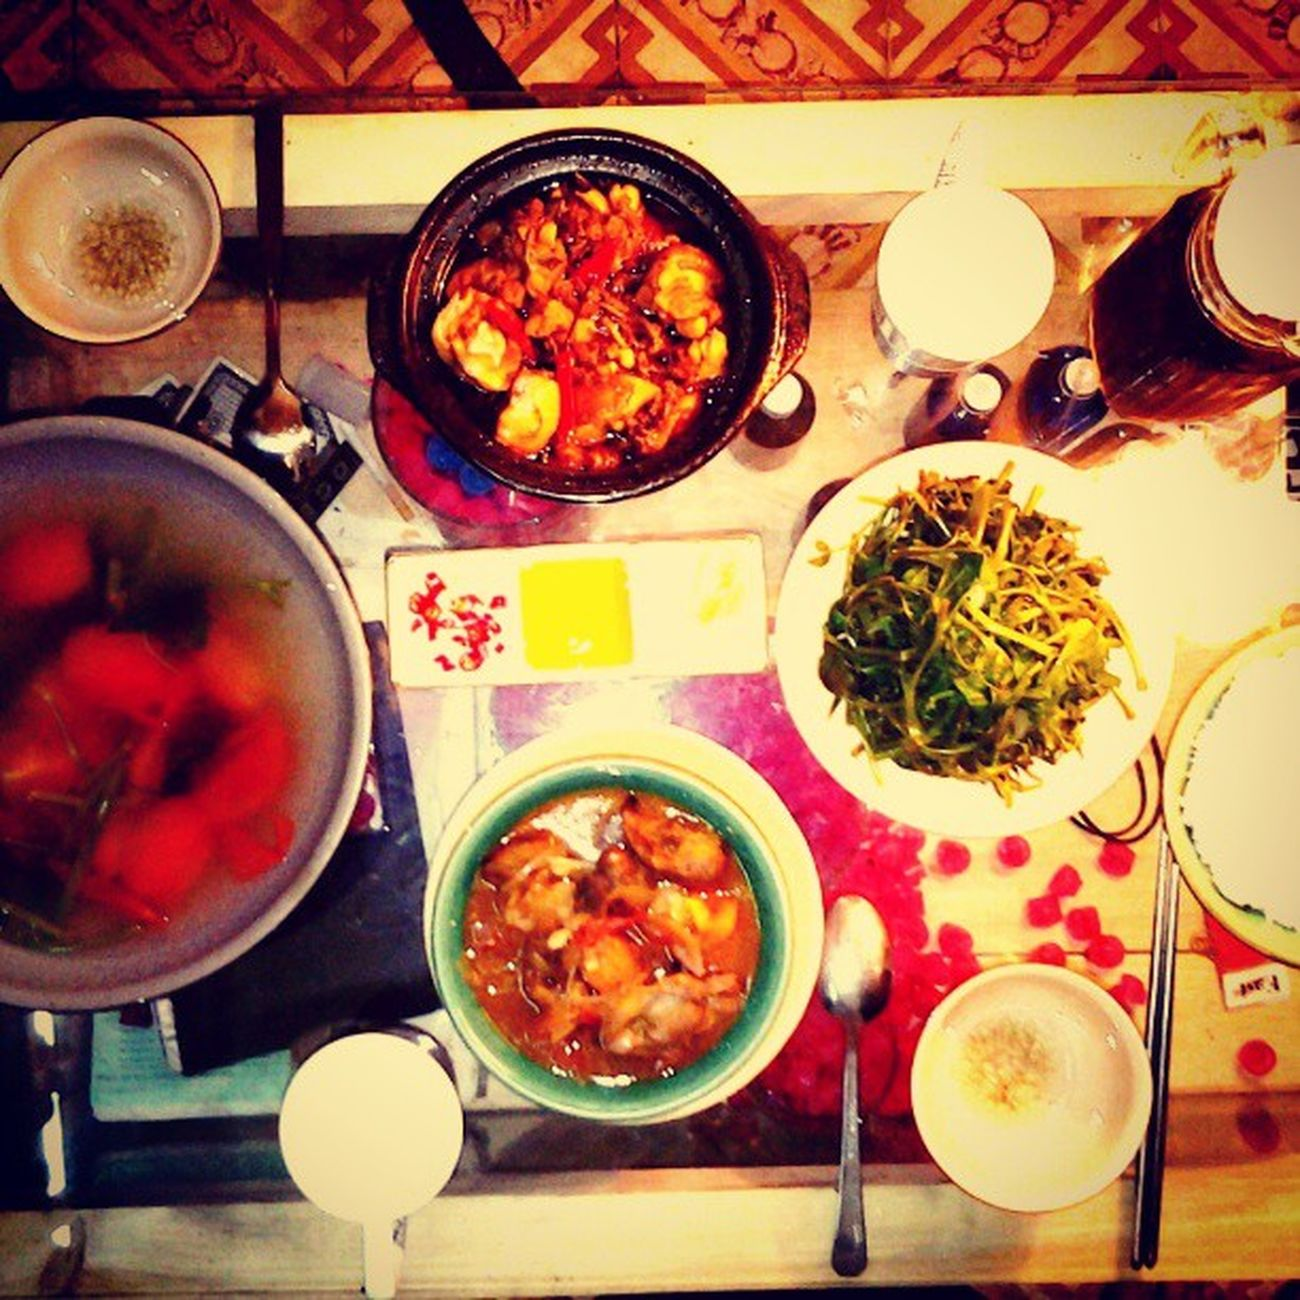 A very first dinner I have cooked since I moved to my new place after almost a month. An Ơi's cuisine. :3